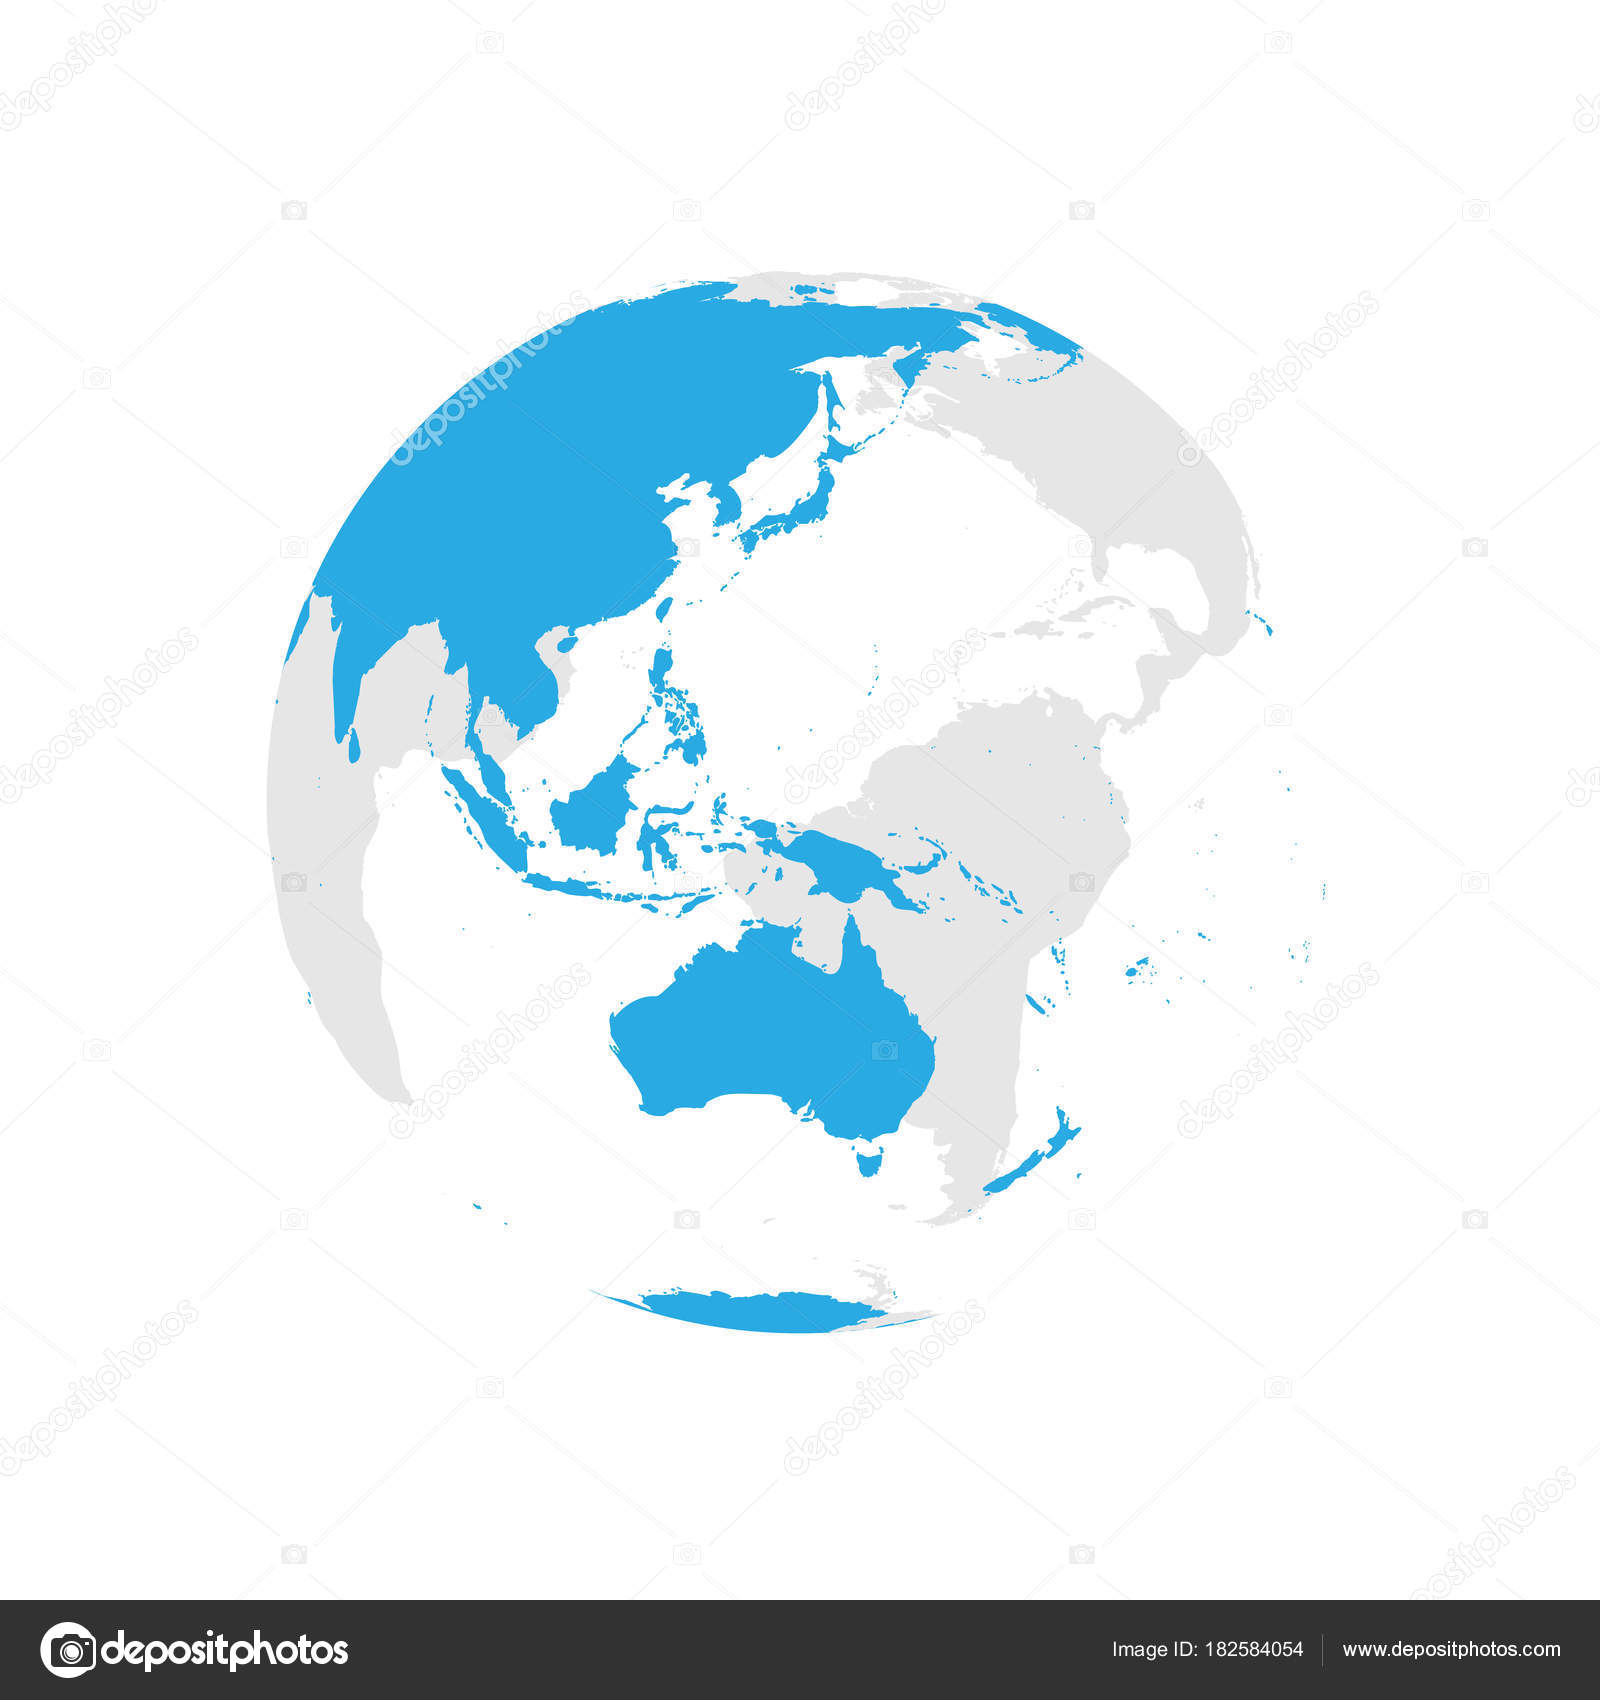 earth globe with blue world map focused on australia and pacific flat vector illustration